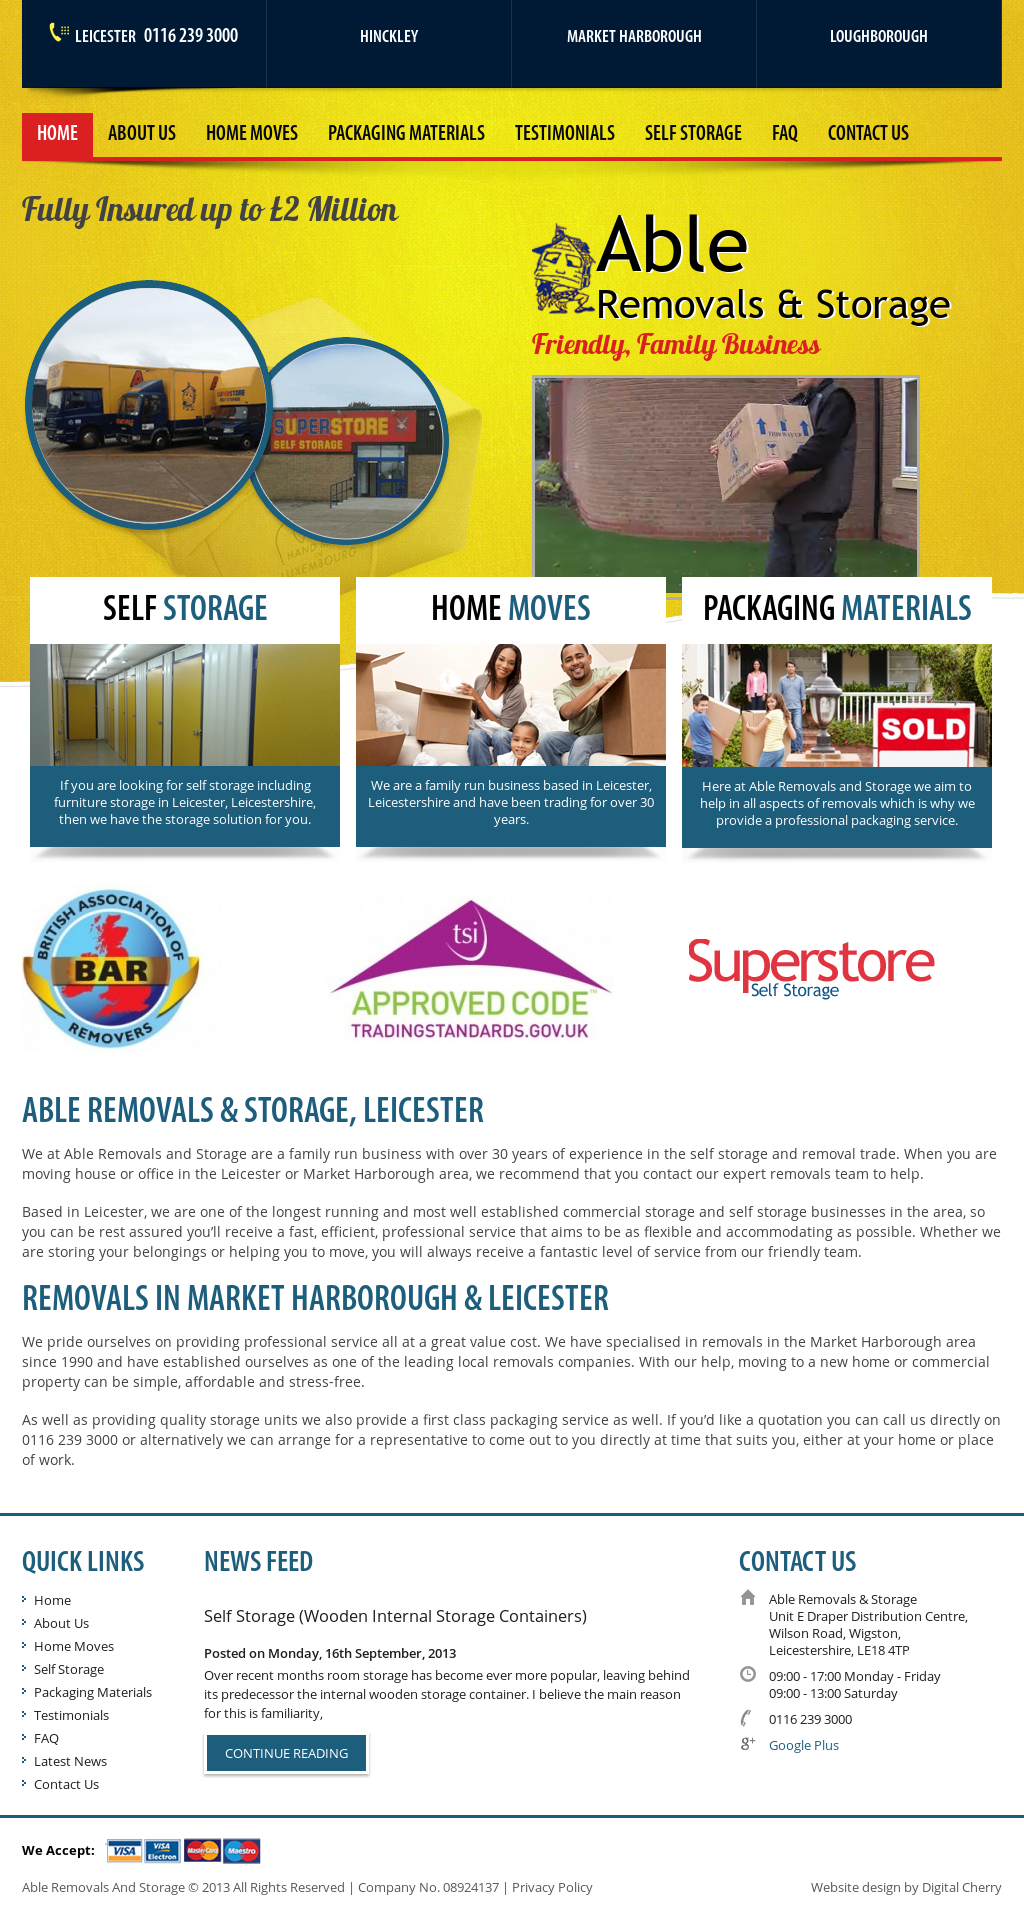 Able Removals & Storage Competitors, Revenue and Employees